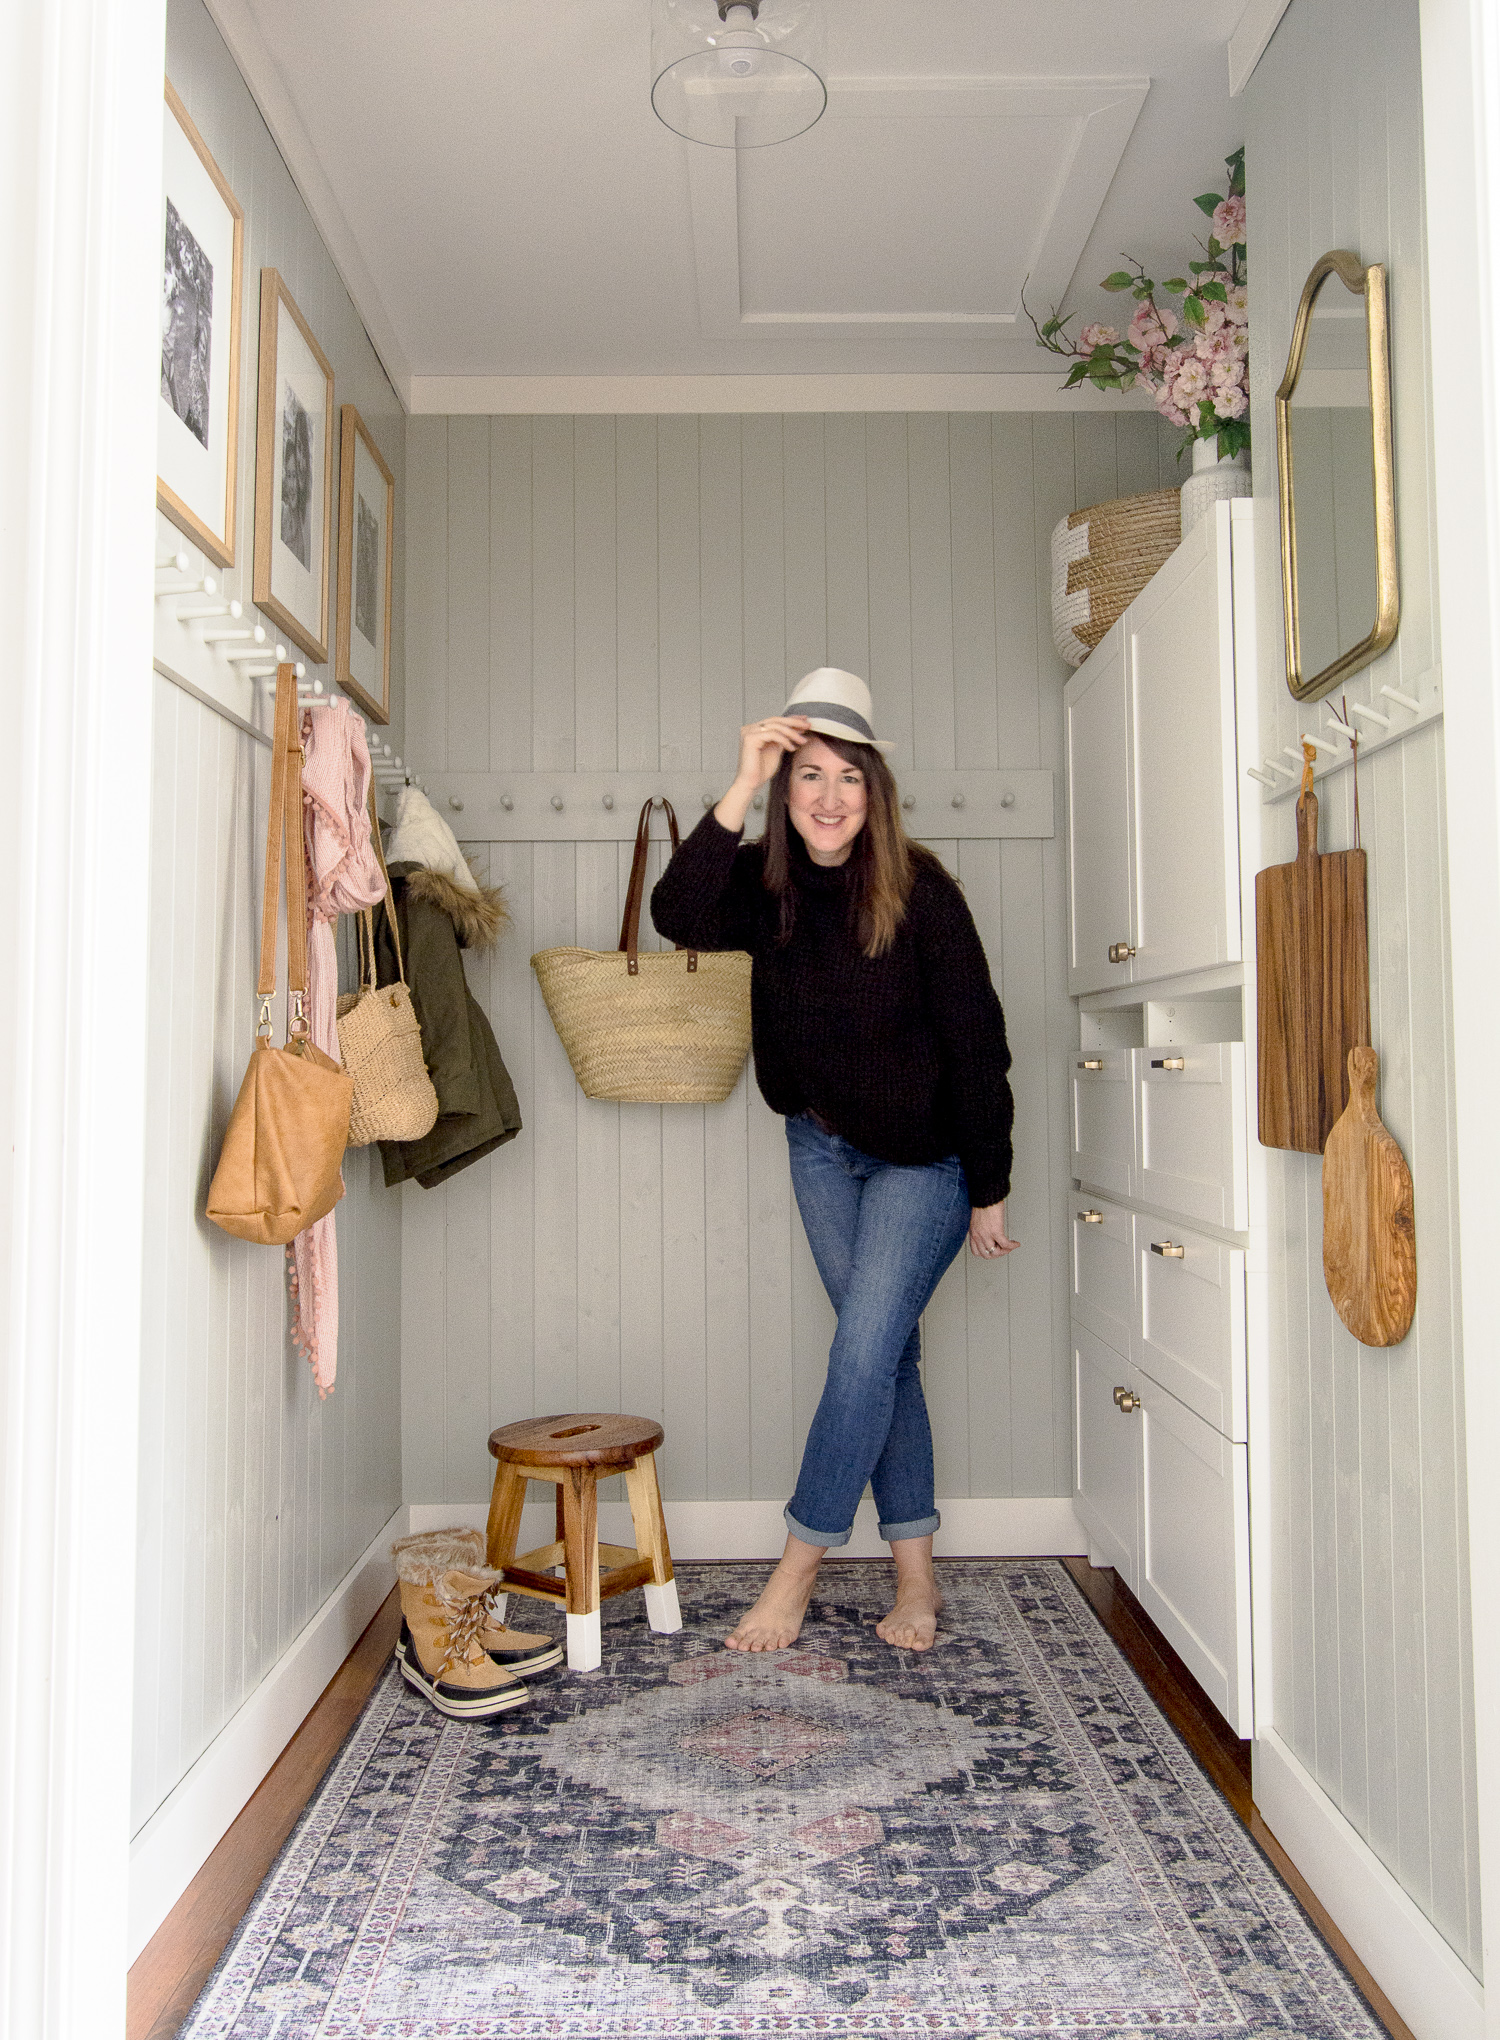 Small mudroom ideas without mudroom cubbies.